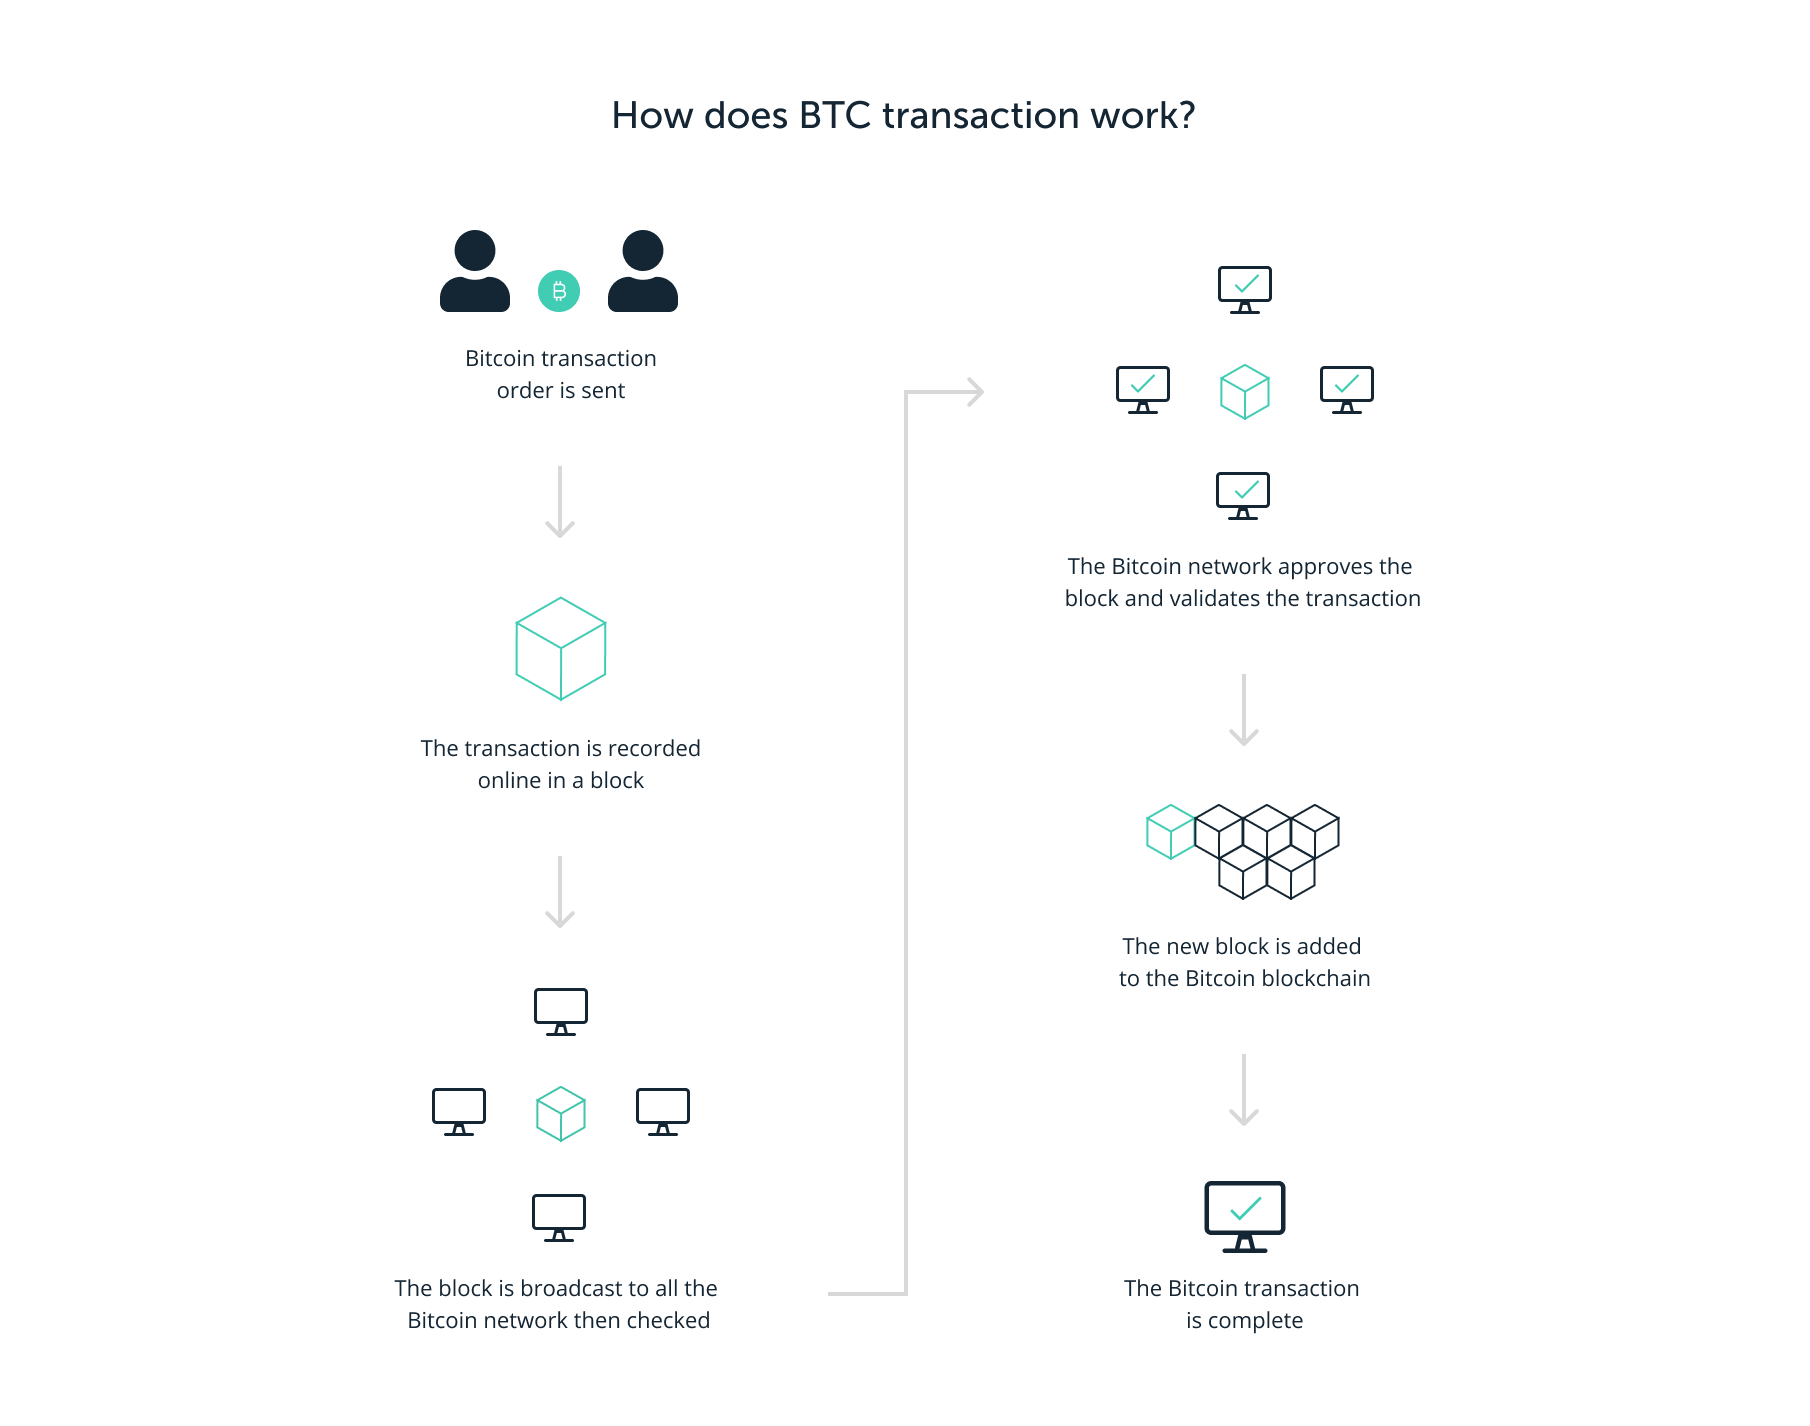 How does BTC transactions work?